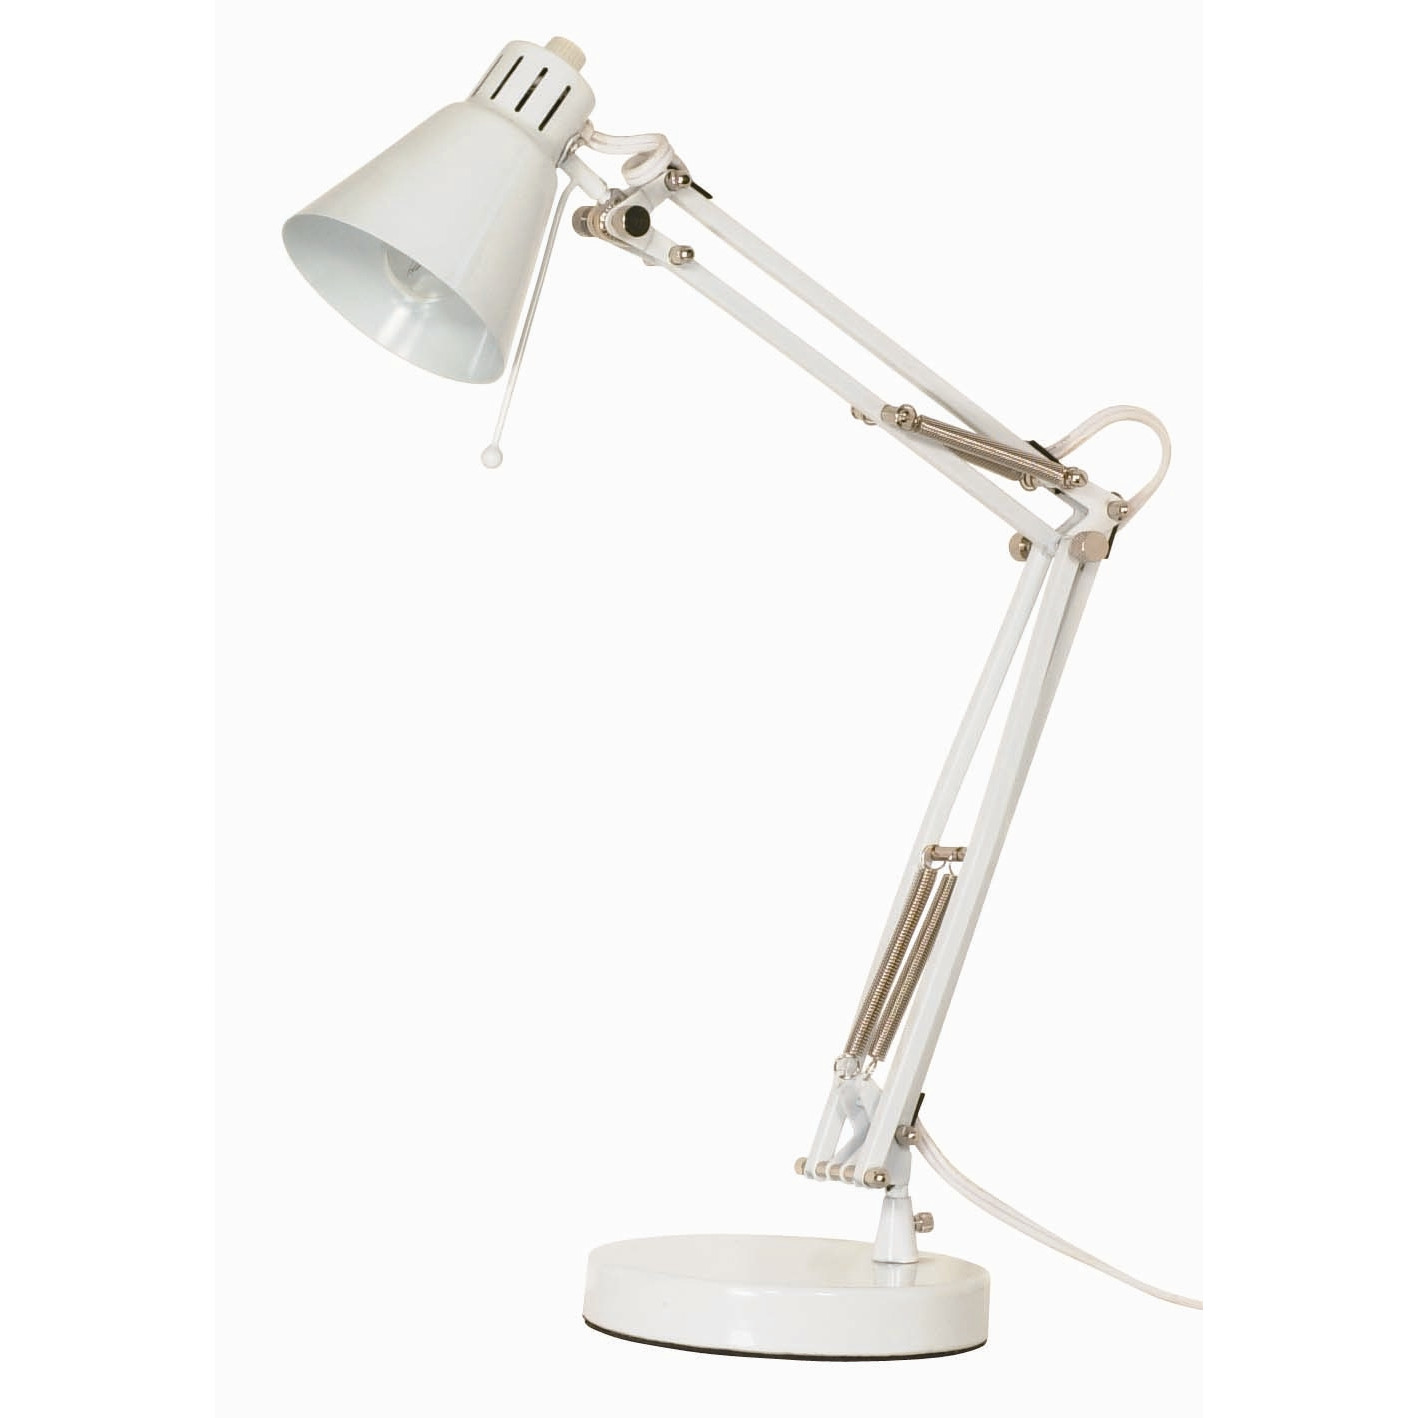 Cozy Nuvo Lighting In Stylish Design For Home Lighting Ideas: Cozy Nuvo Lighting Mini Head Drafting Desk Table Lamp With Empire Shade For Study Lighting Ideas